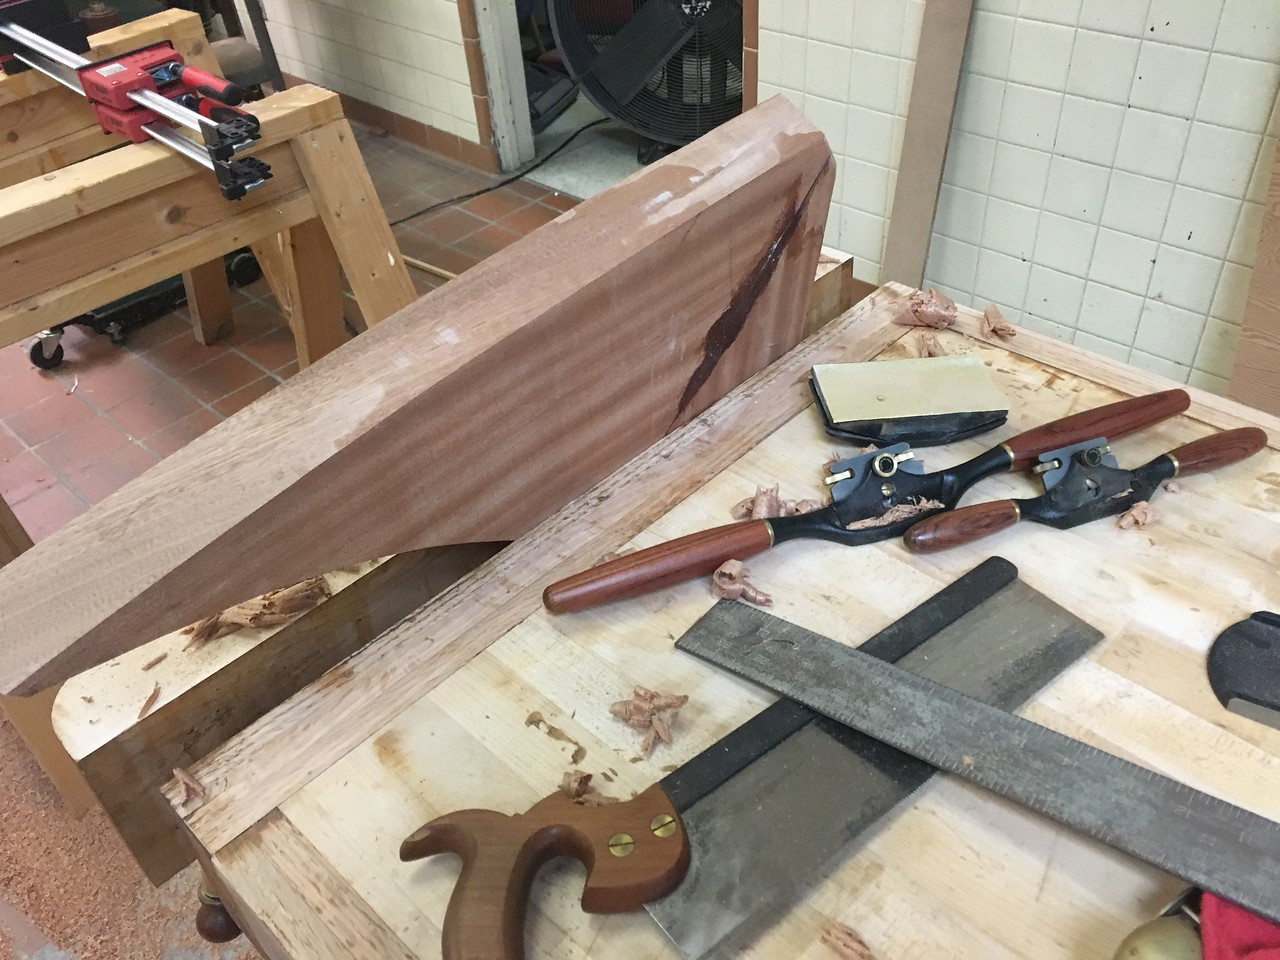 More carving to find the perfect fit